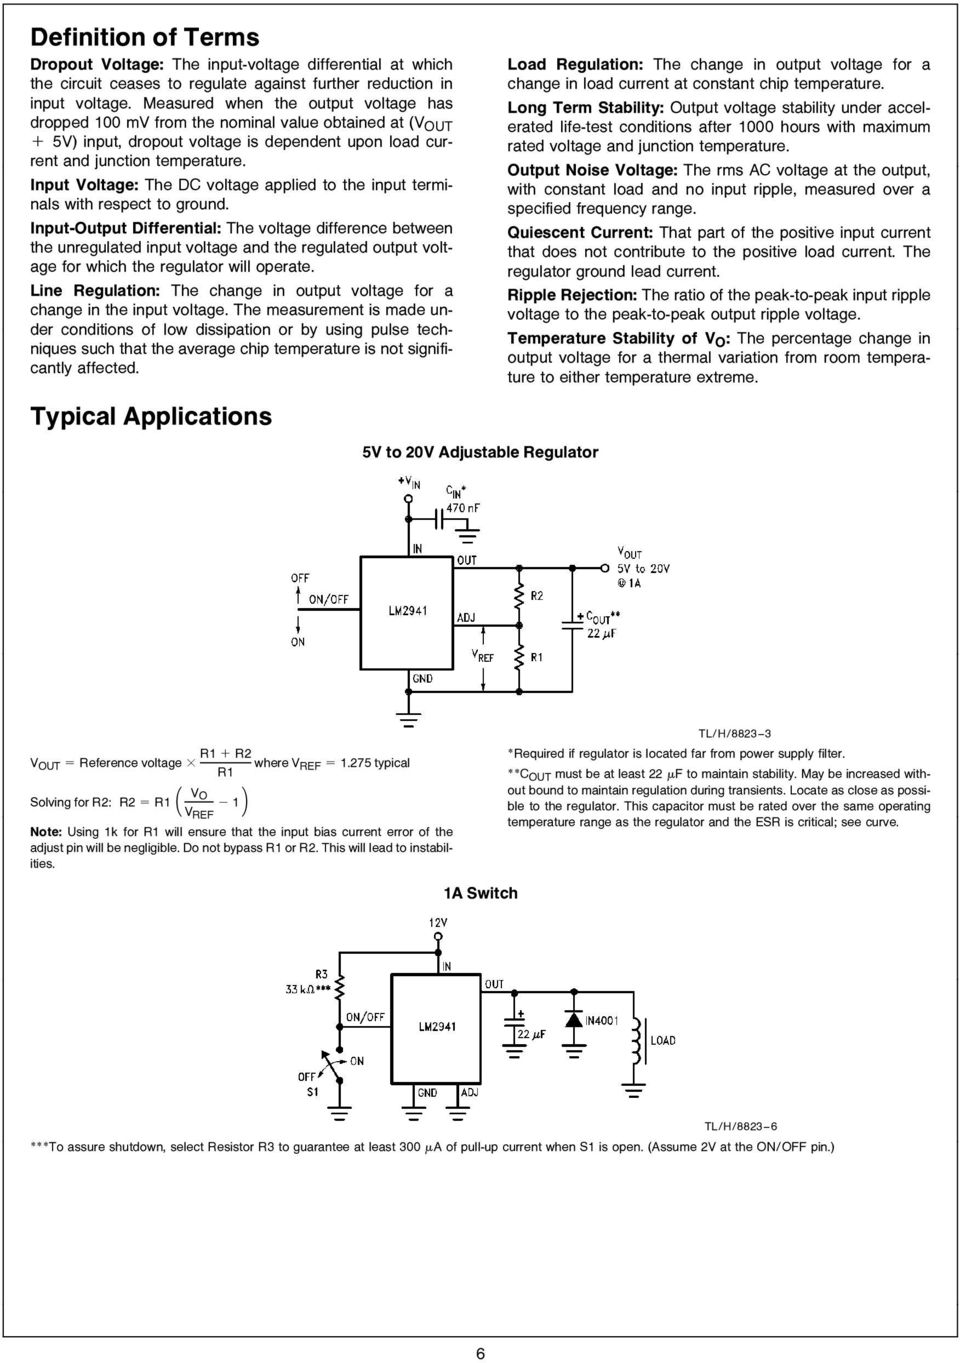 Lm2941 Lm2941c 1a Low Dropout Adjustable Regulator Pdf High Current Circuit Diagram Using Lm117 Respect To Ground Input Output Differential The Voltage Difference Between Unregulated And